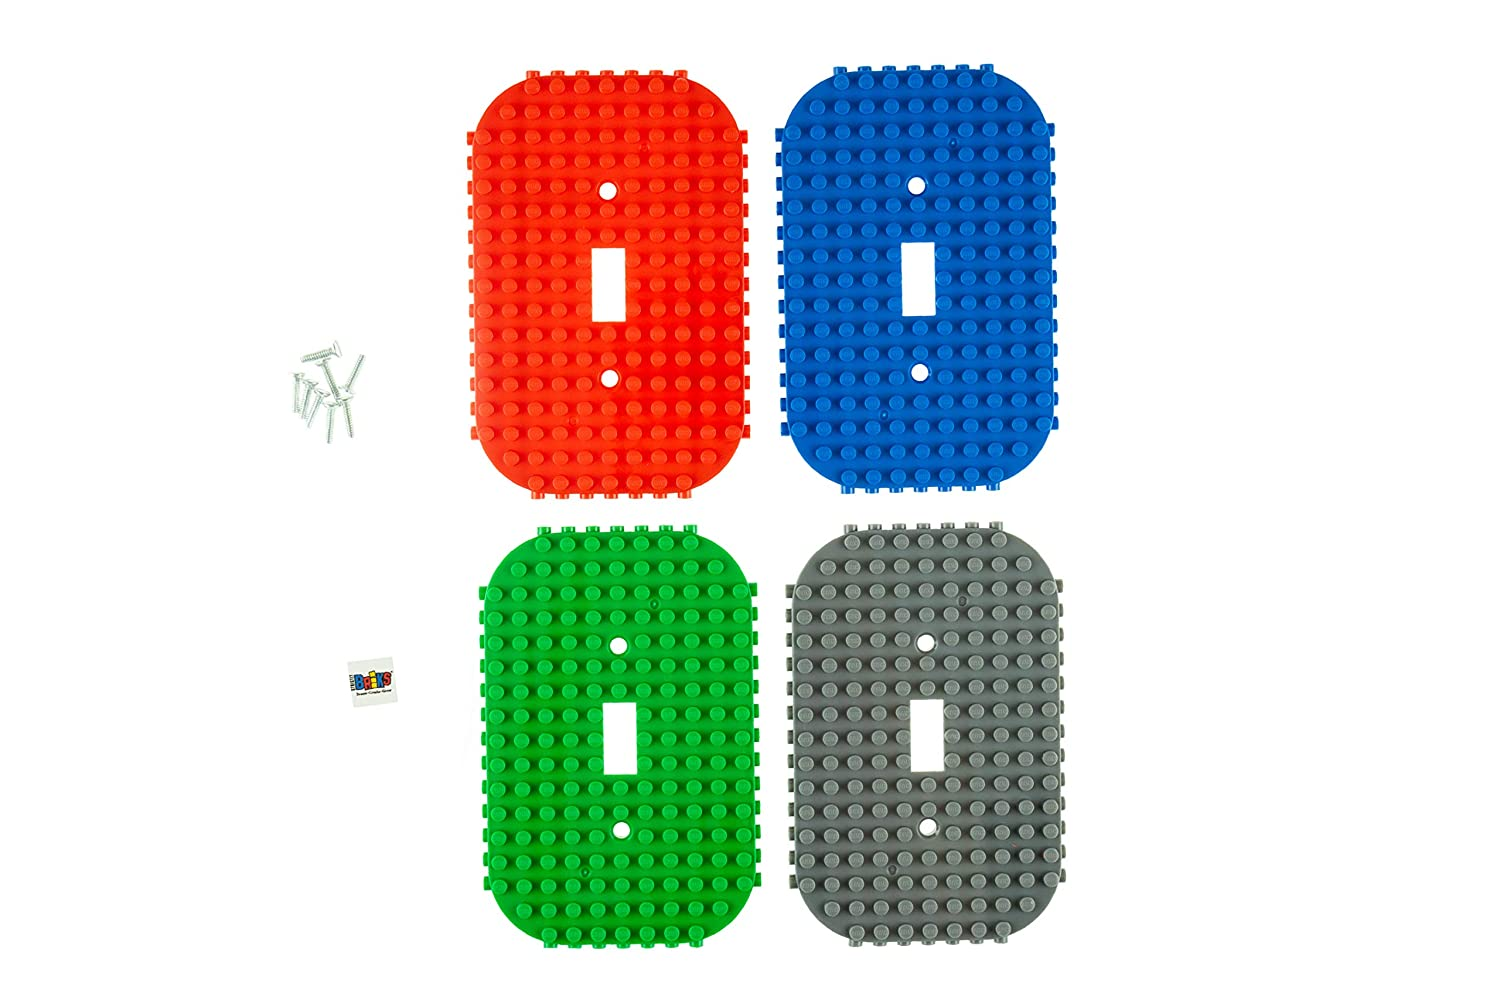 Classic Light Switch Baseplate Covers by Strictly Briks   Building Bricks Base Plates   100% Compatible with All Major Brands   Unique Cover for Bedrooms & Play Rooms   4 Pack Blue, Green, Red, Gray